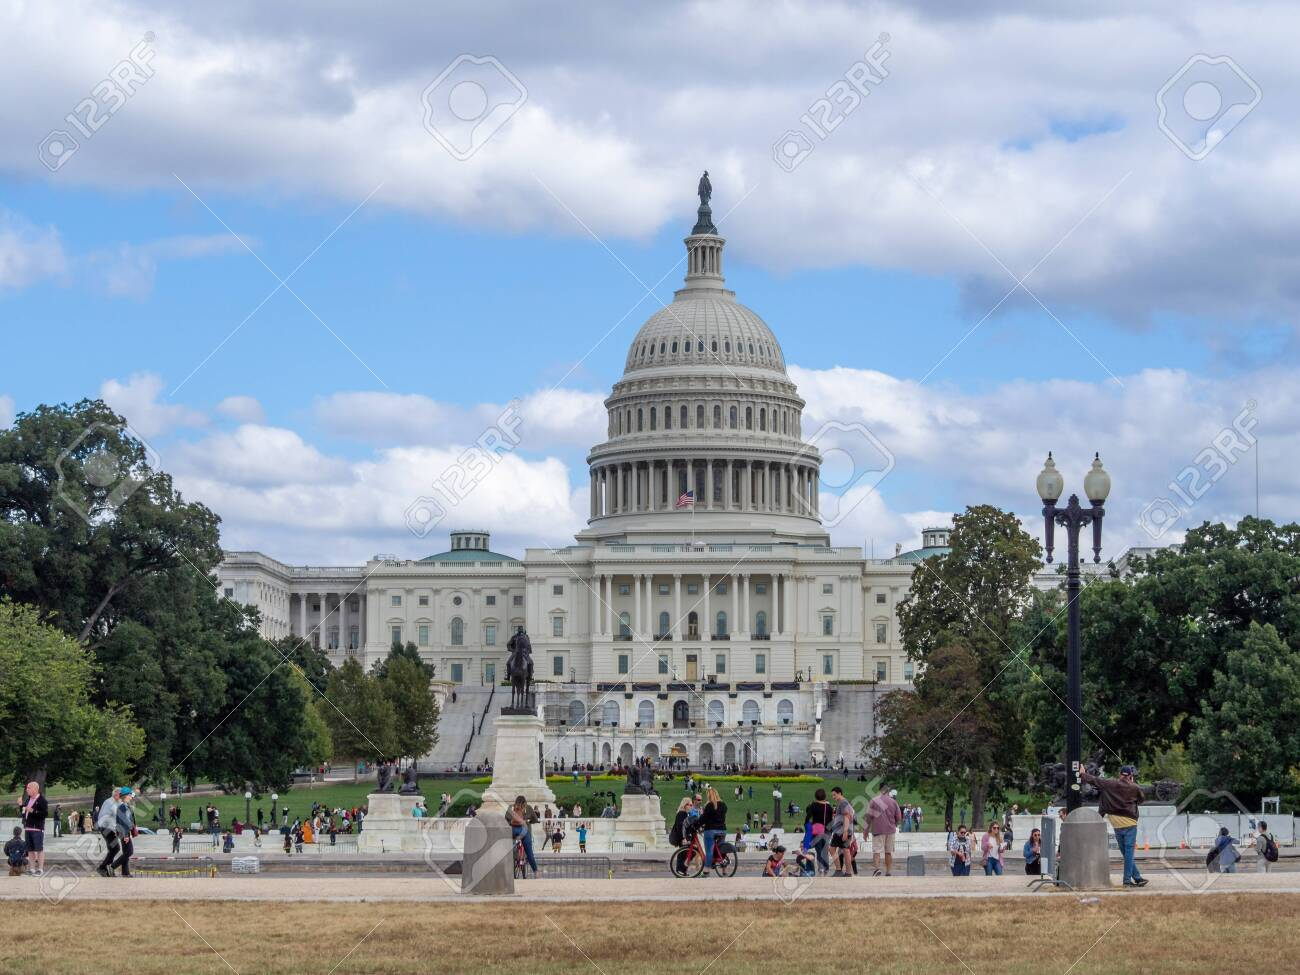 Washington DC, District of Columbia [United States US Capitol Building, architecture detail] - 136825036